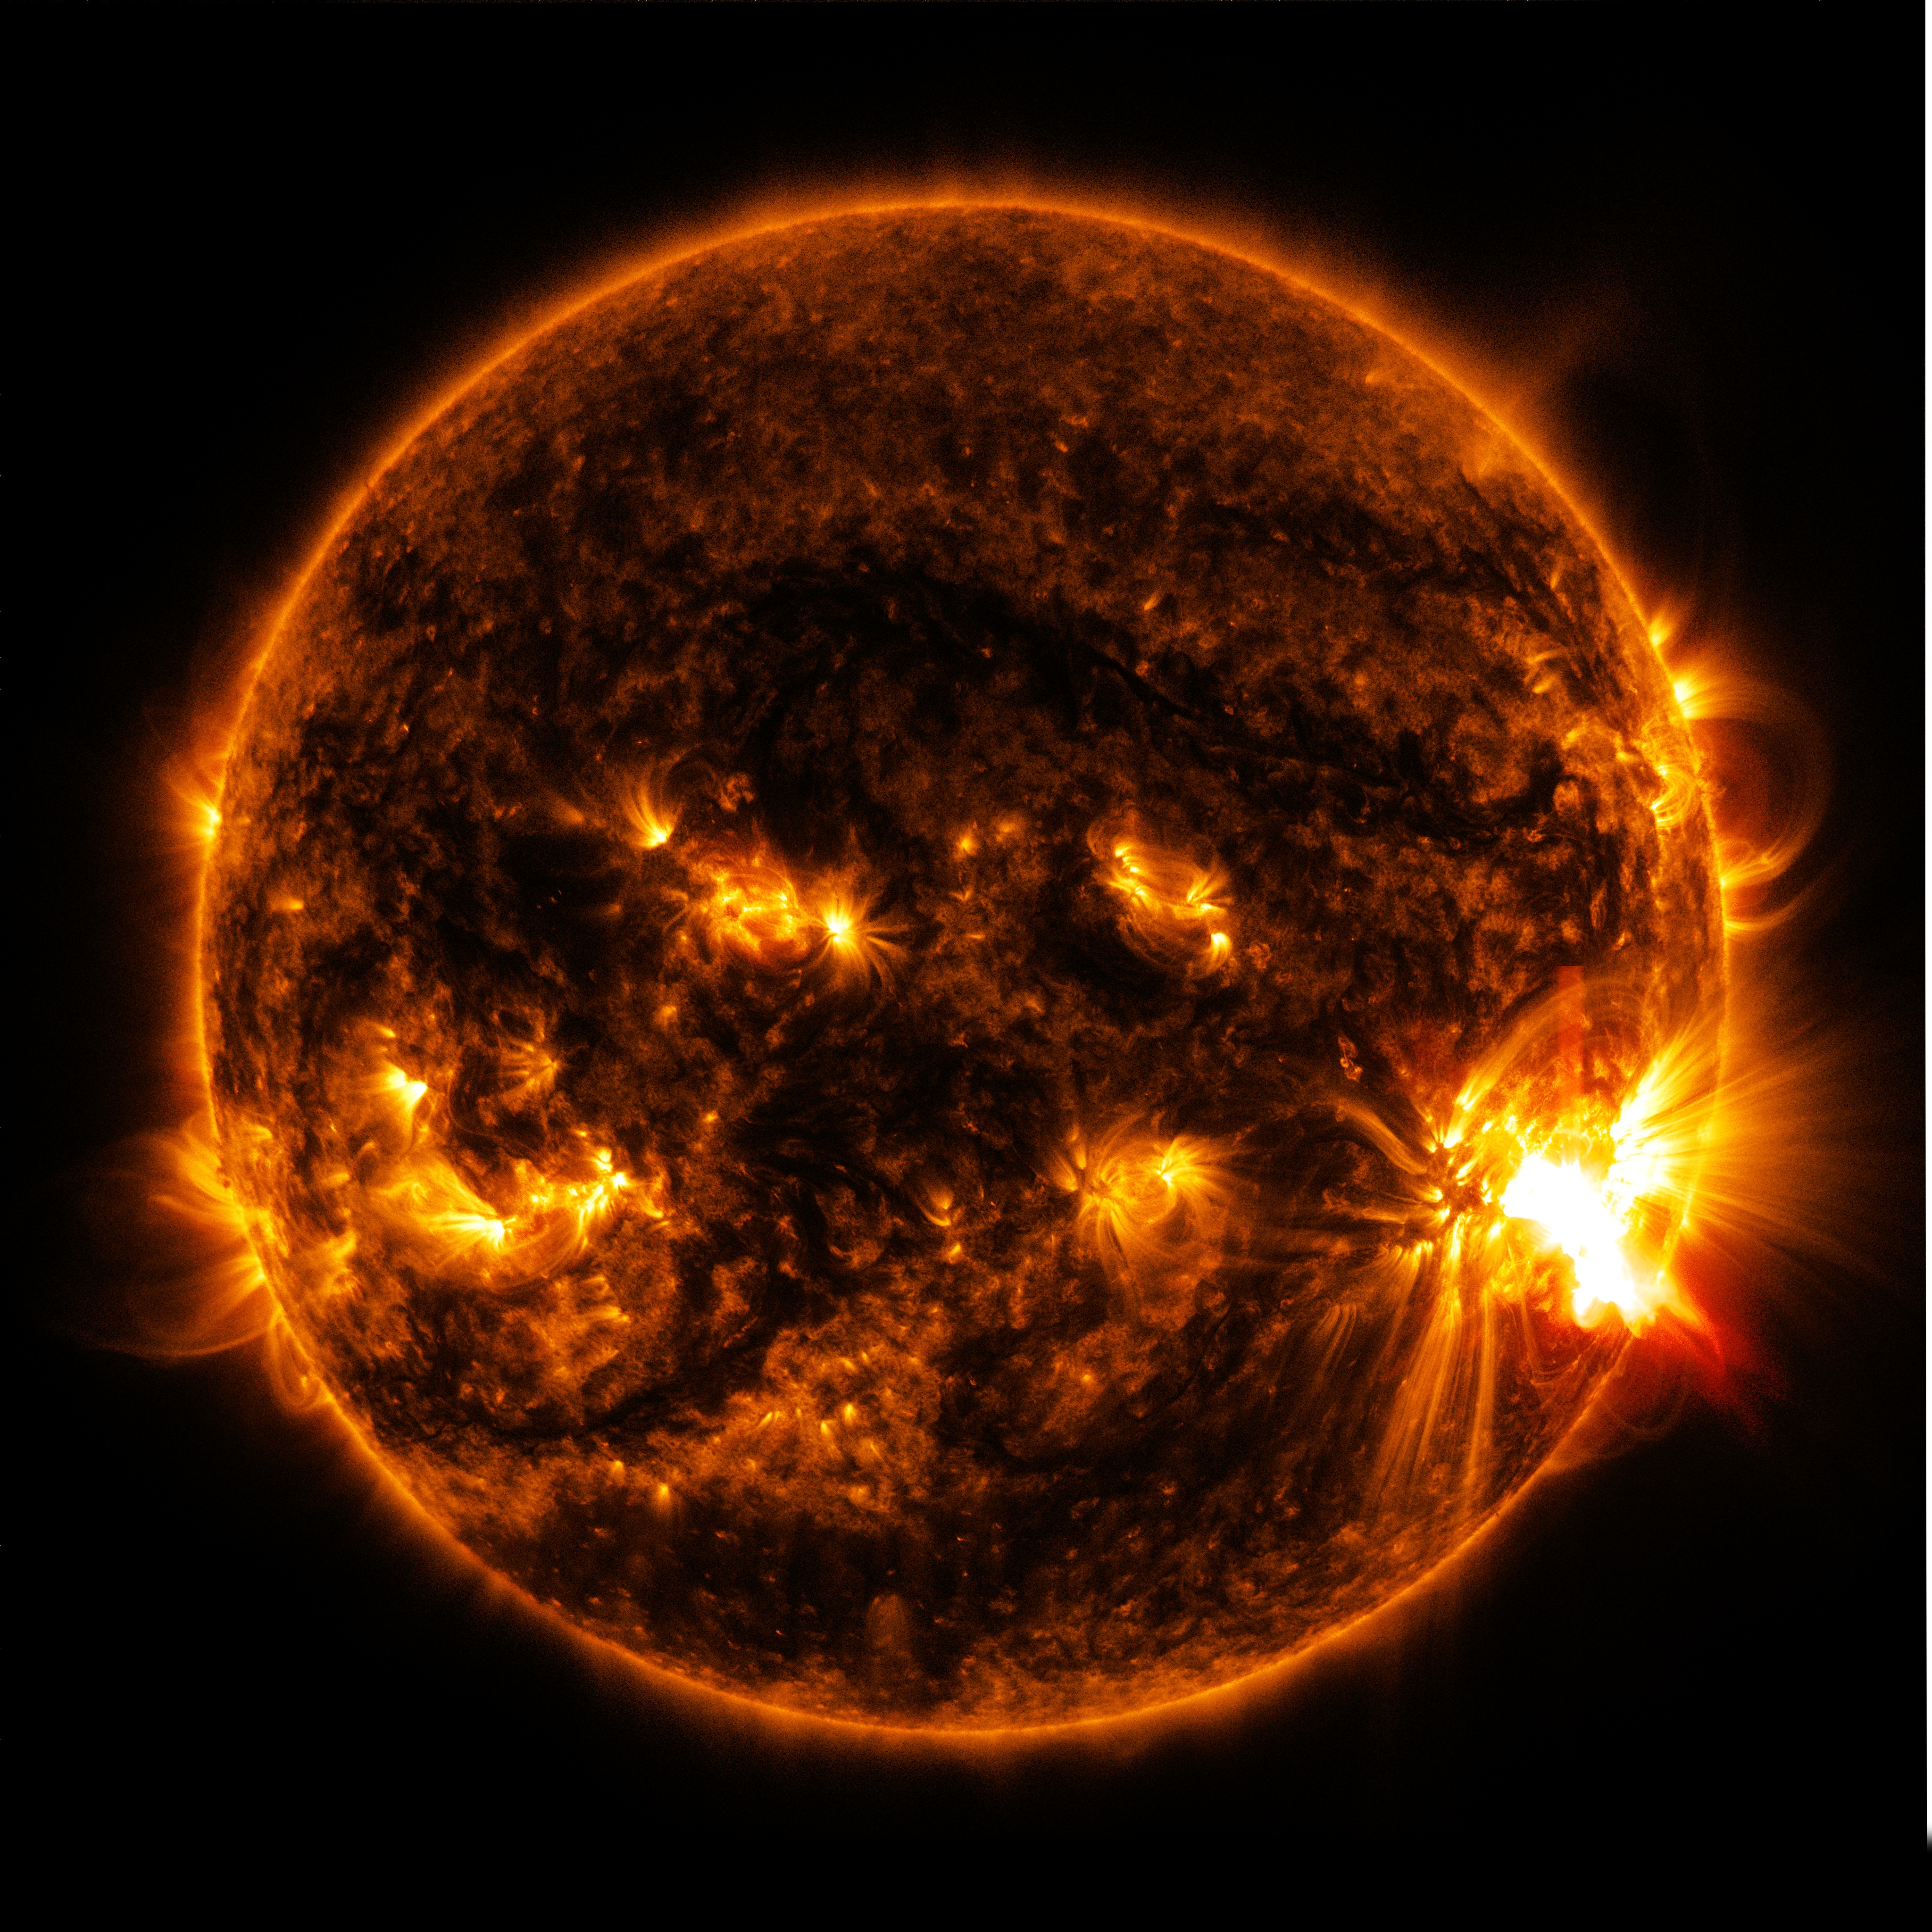 Sun From Space: NASA's SDO Observes More Flares Erupting From Giant